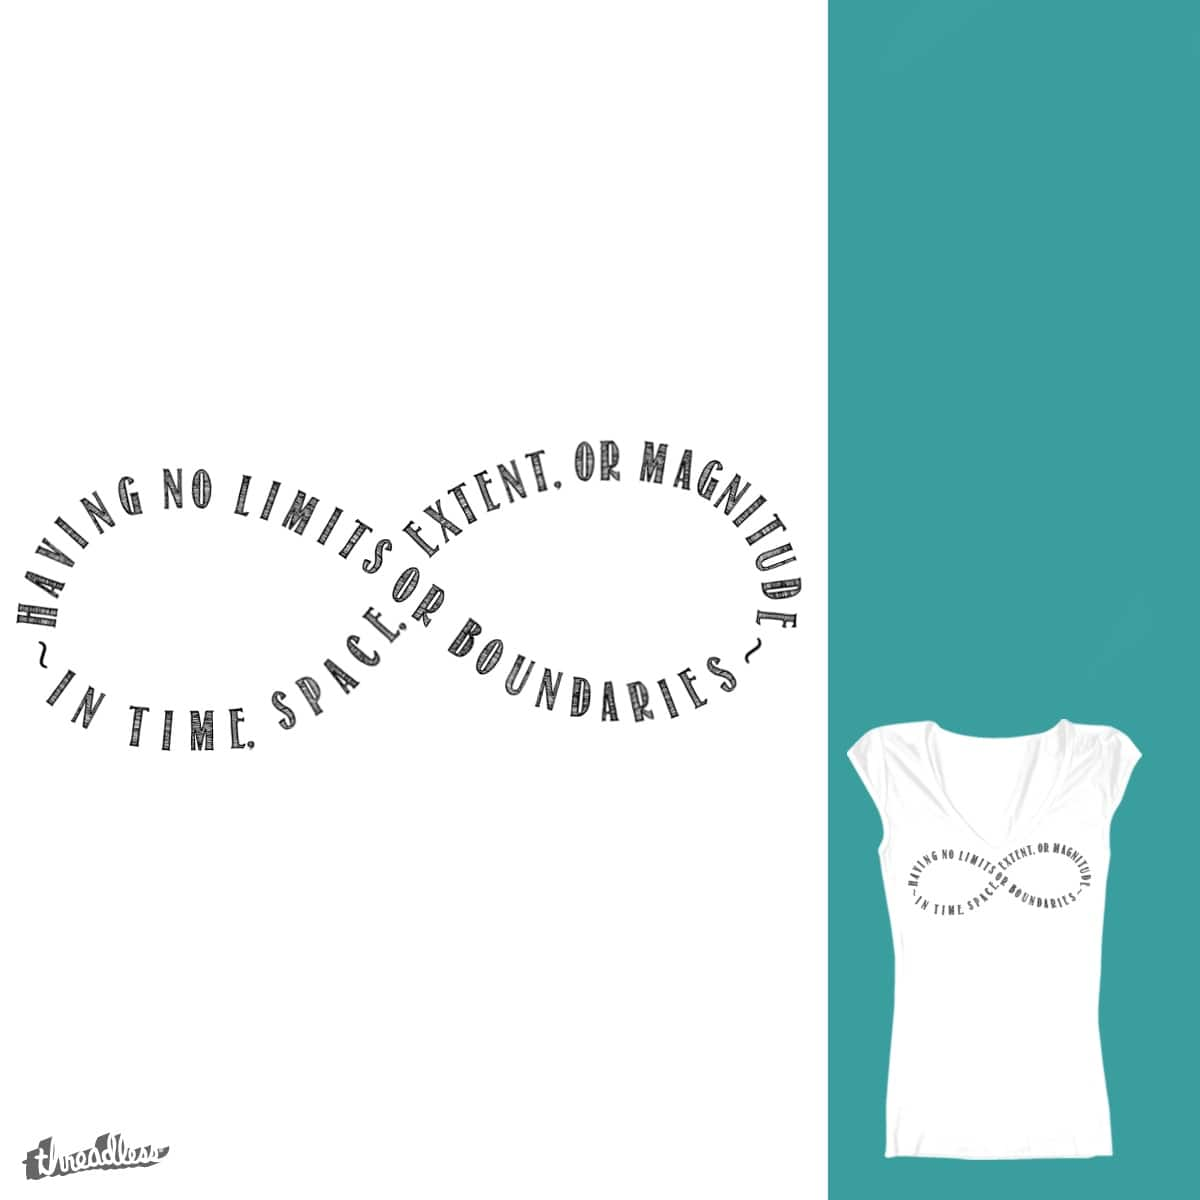 Infinite by Valsie on Threadless